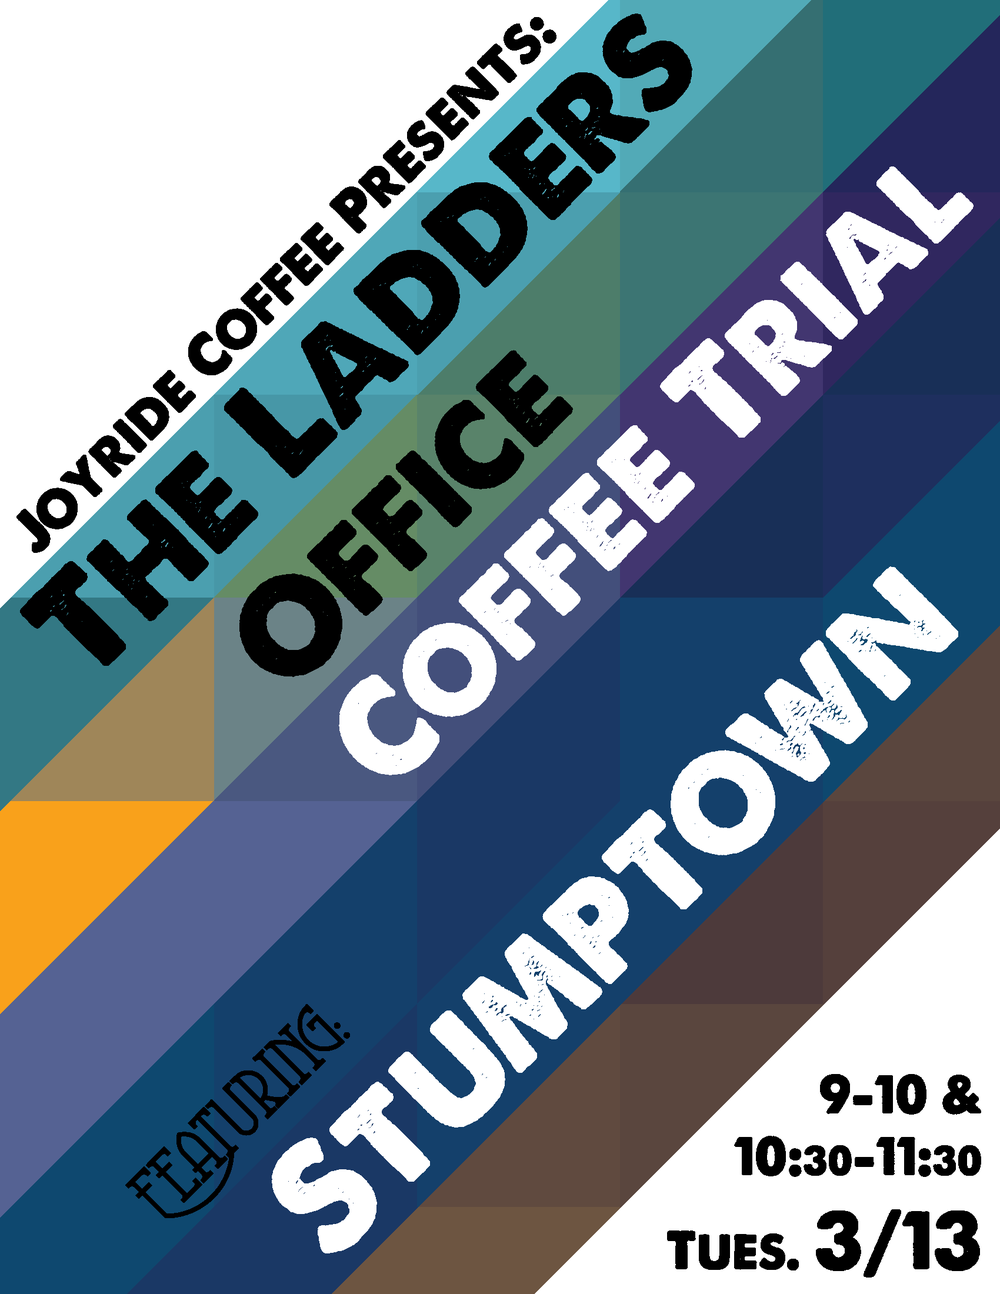 The Ladders Joyride Office Coffee Tasting Flier